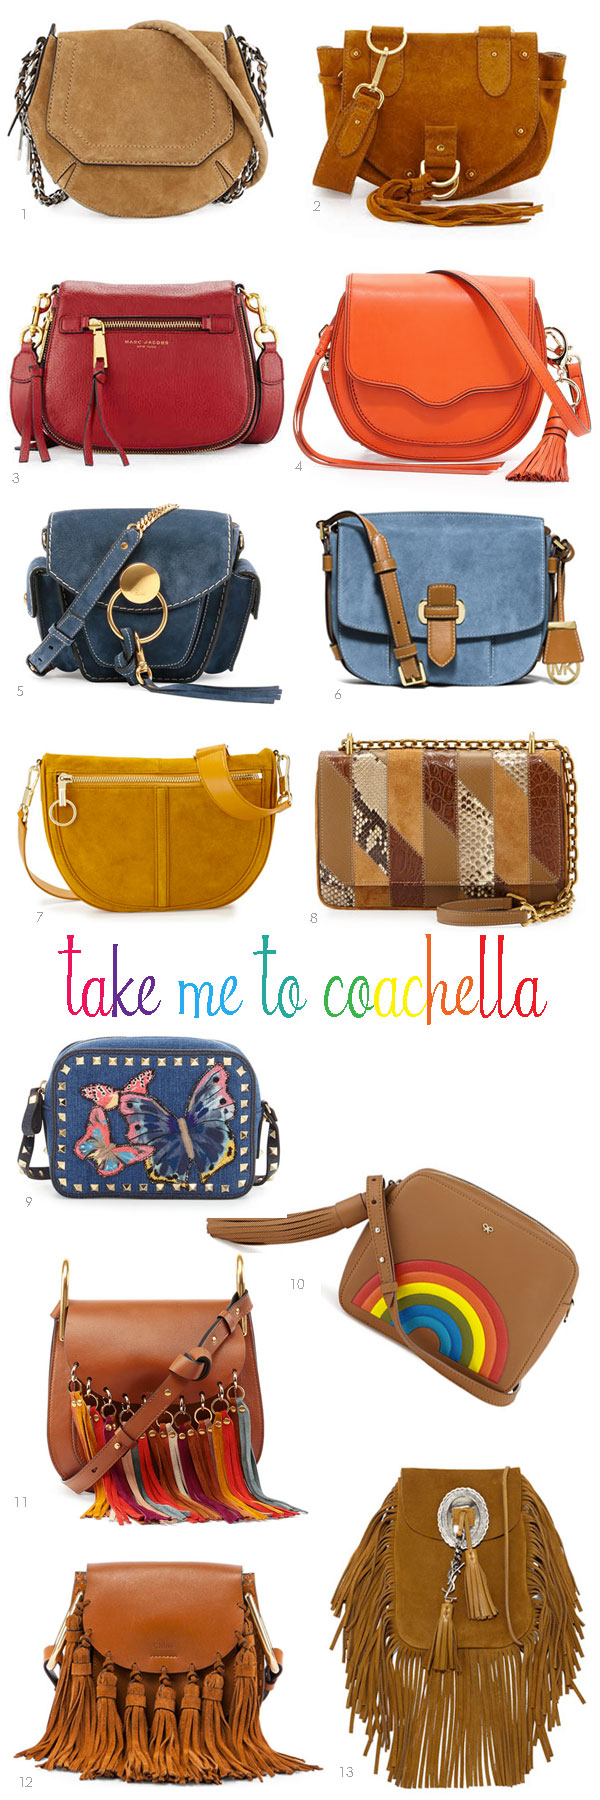 Take Me To Coachella | 13 crossbody Bags | Ridgely's Radar